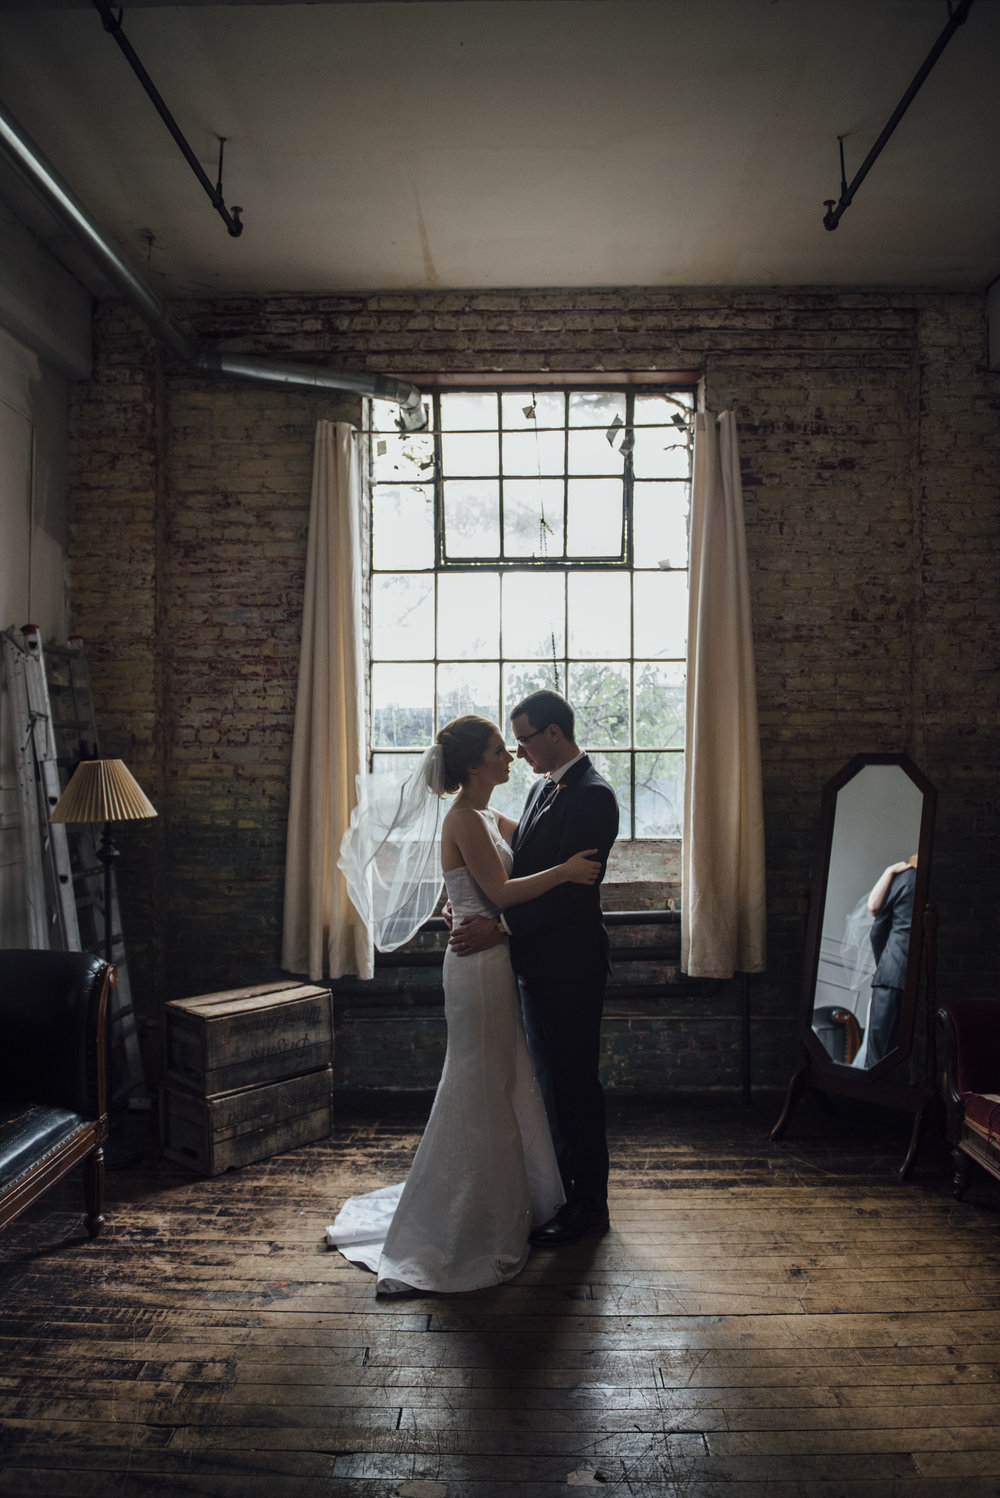 boakview Photography - We love to document stories as they unfold with all their smiles, tears, and embraces. We love what we do and we do it with love...Address: 192 Sunnyside Ave, TorontoEmail: boakviewphoto@gmail.comContact: Katarina KurucPhone: (647) 454-4744Website: .www.boakviewphotography.cominstagram ~ facebook ~ twitter ~ pinterest